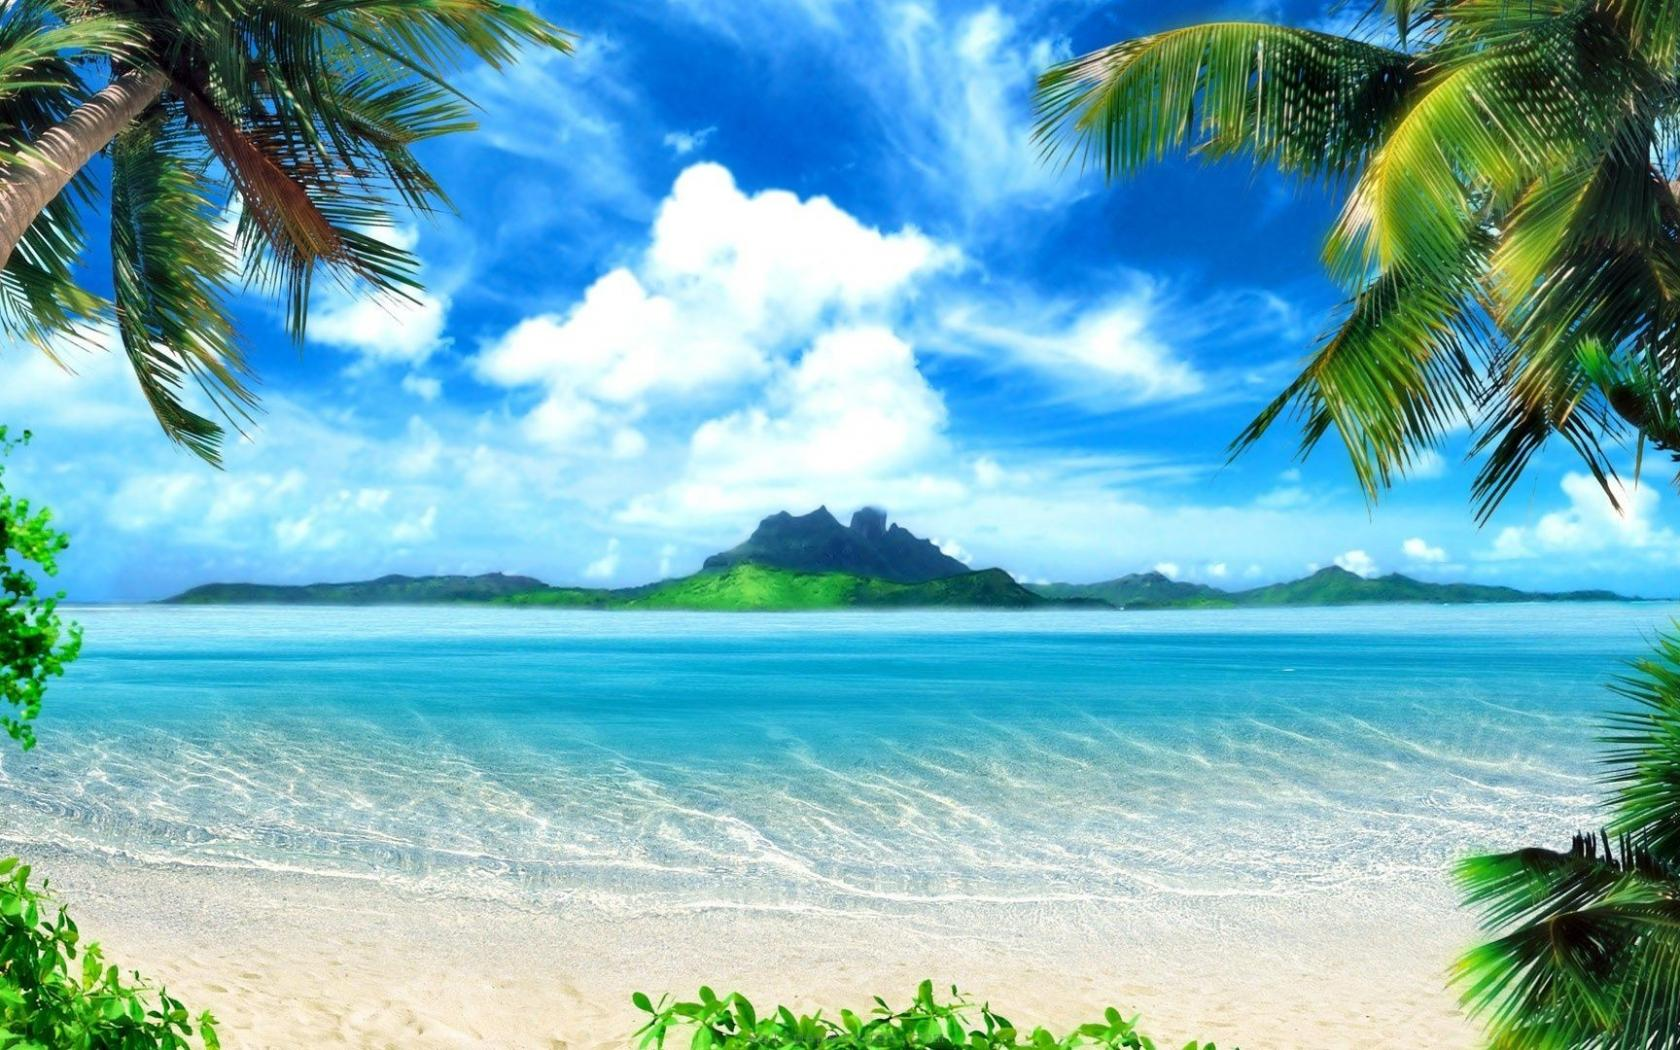 9 best images about Tropical Paradise on Pinterest | Beautiful ...